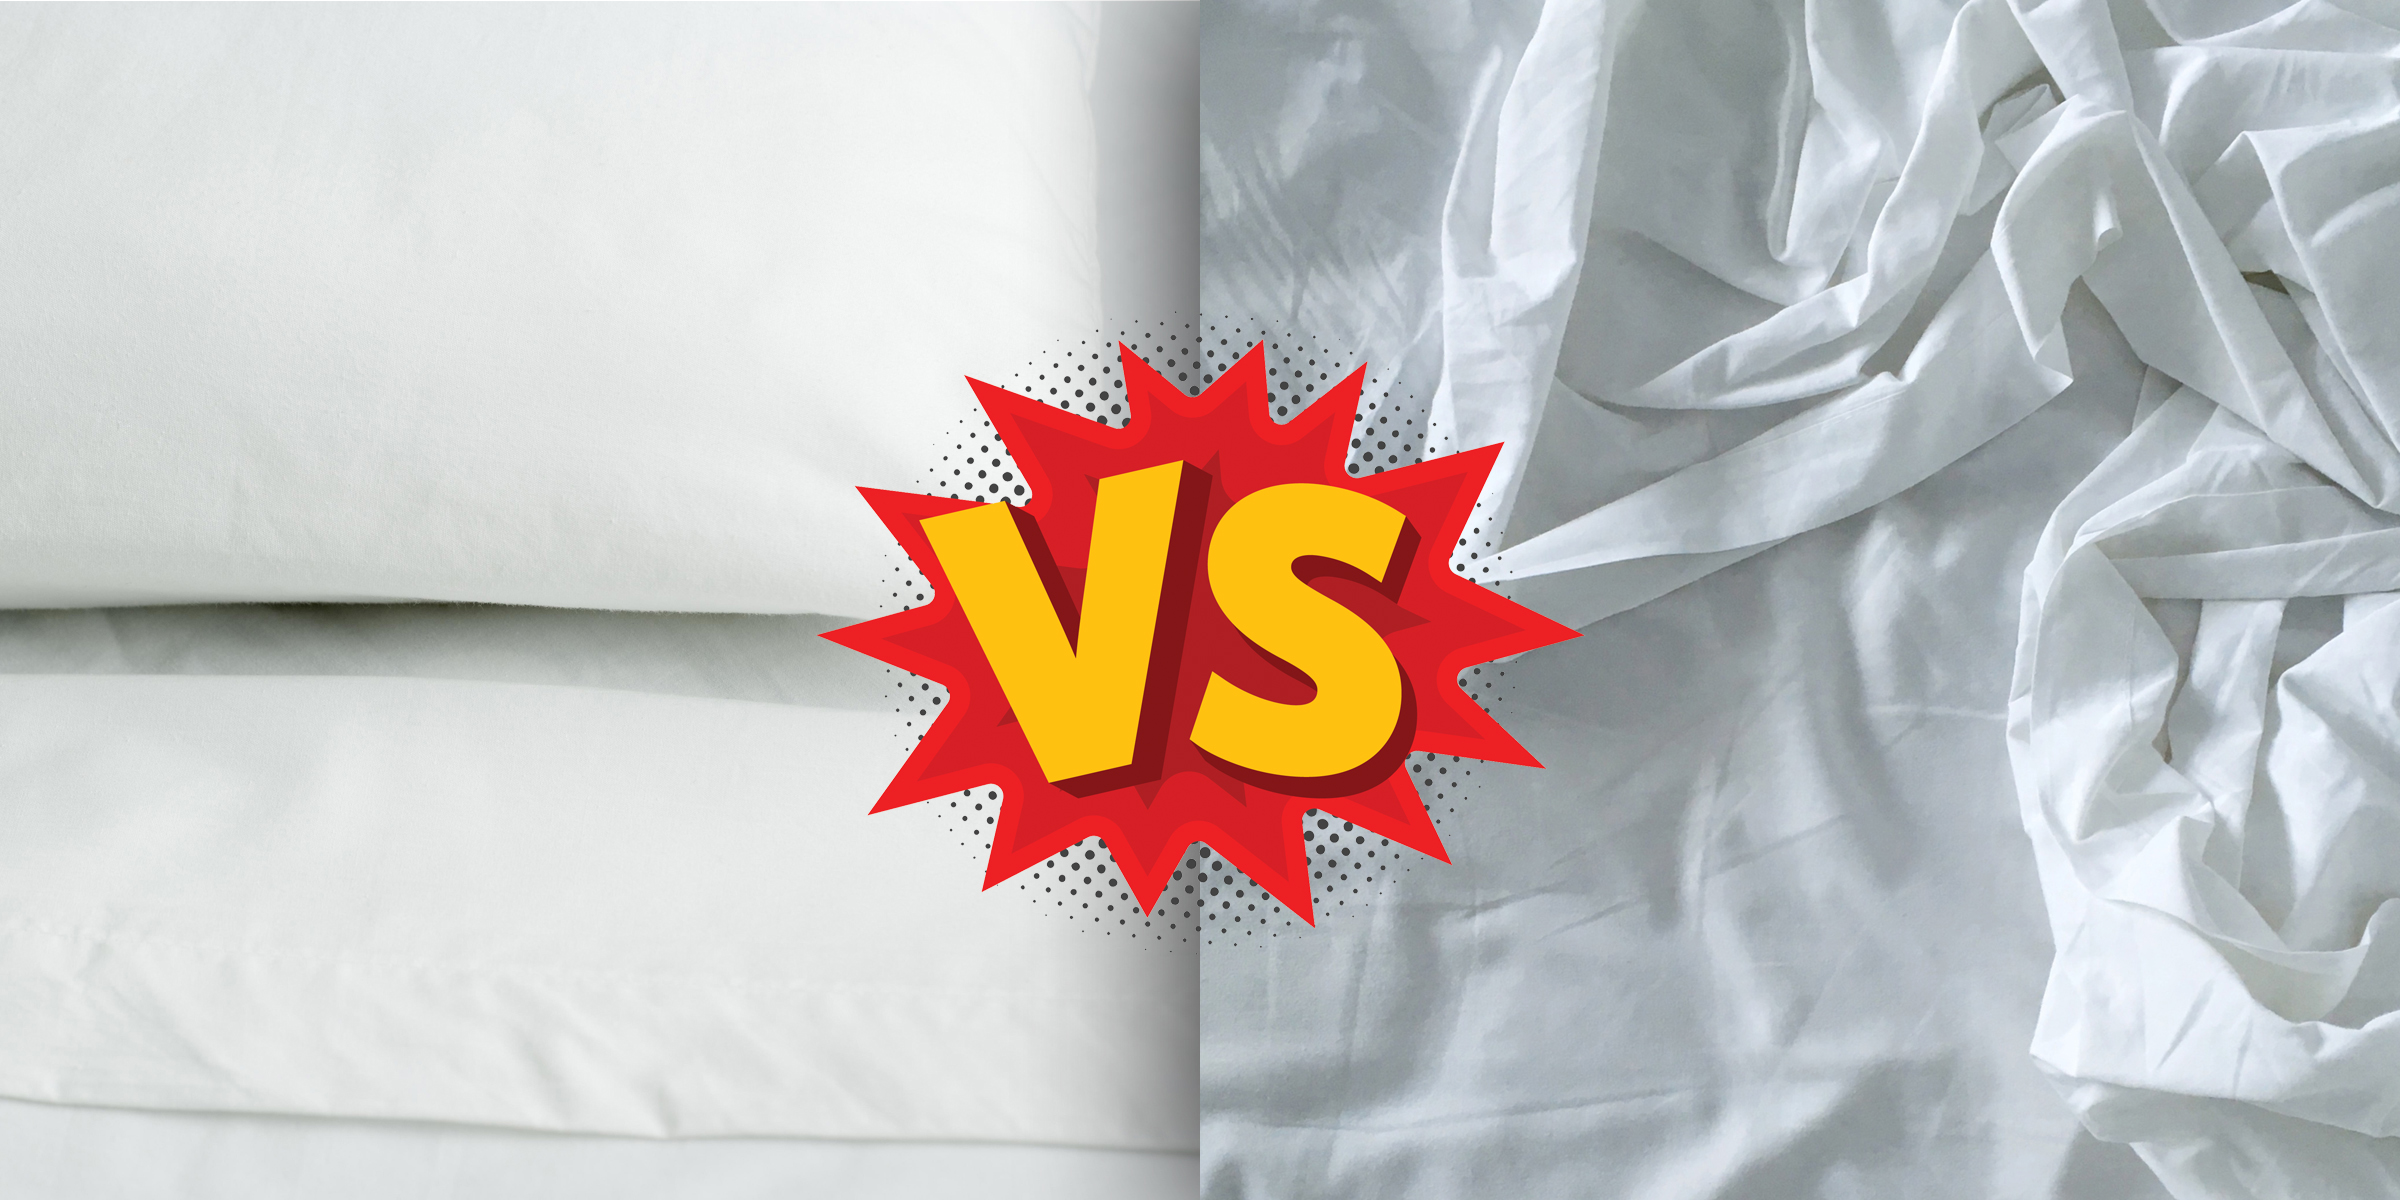 Tucked or untucked? Sleep expert weighs in on the great top sheet debate